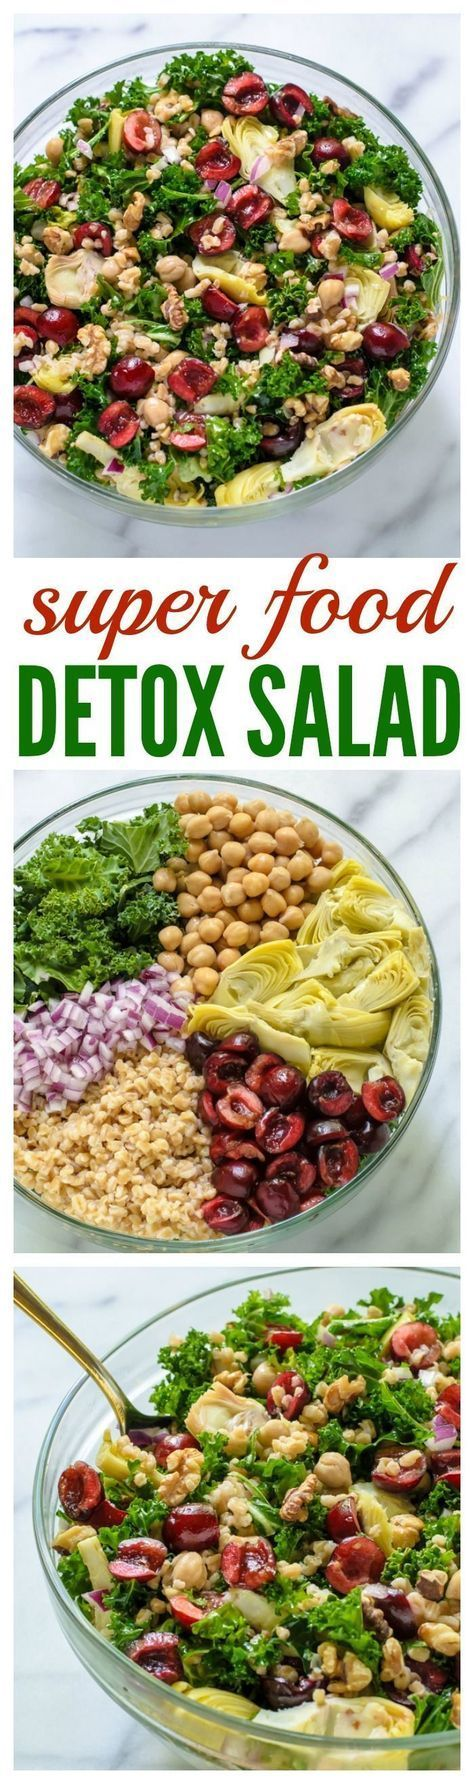 Super food detox salad with cherries and kale healthy salad super food detox salad with cherries and kale healthy salad recipe abc nutrition tips 4 everyday sensible meals pinterest healthy salad recipes forumfinder Gallery